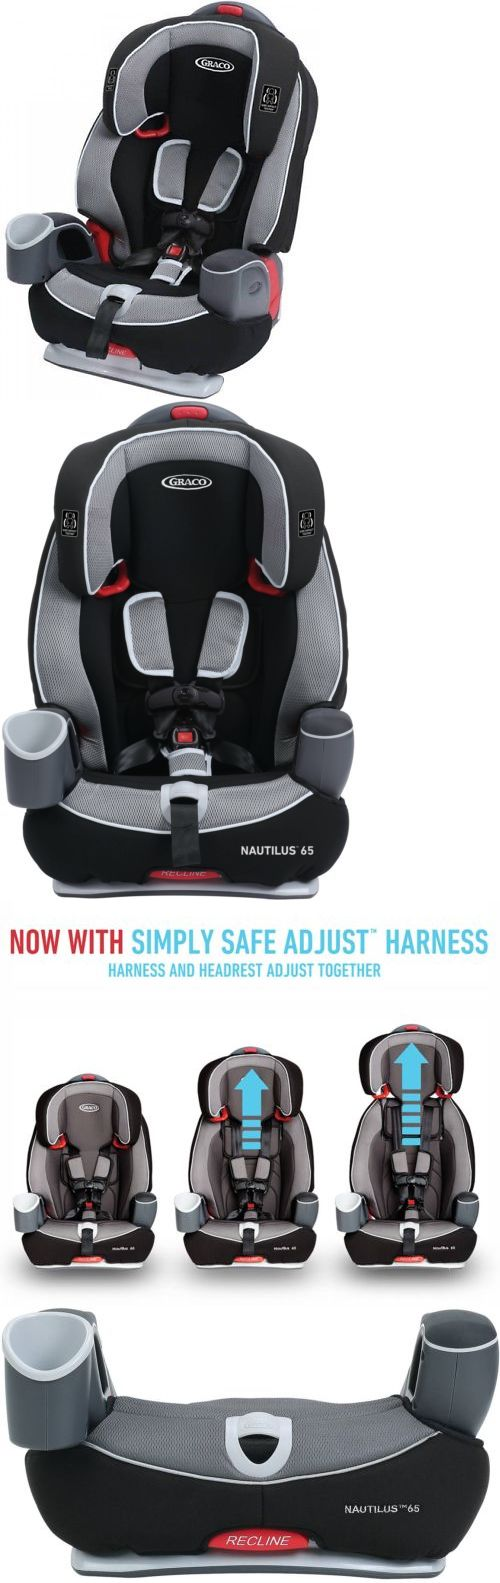 Graco Nautilus 65 3 In 1 Harness Booster Car Seat Track Best Brand Selling New